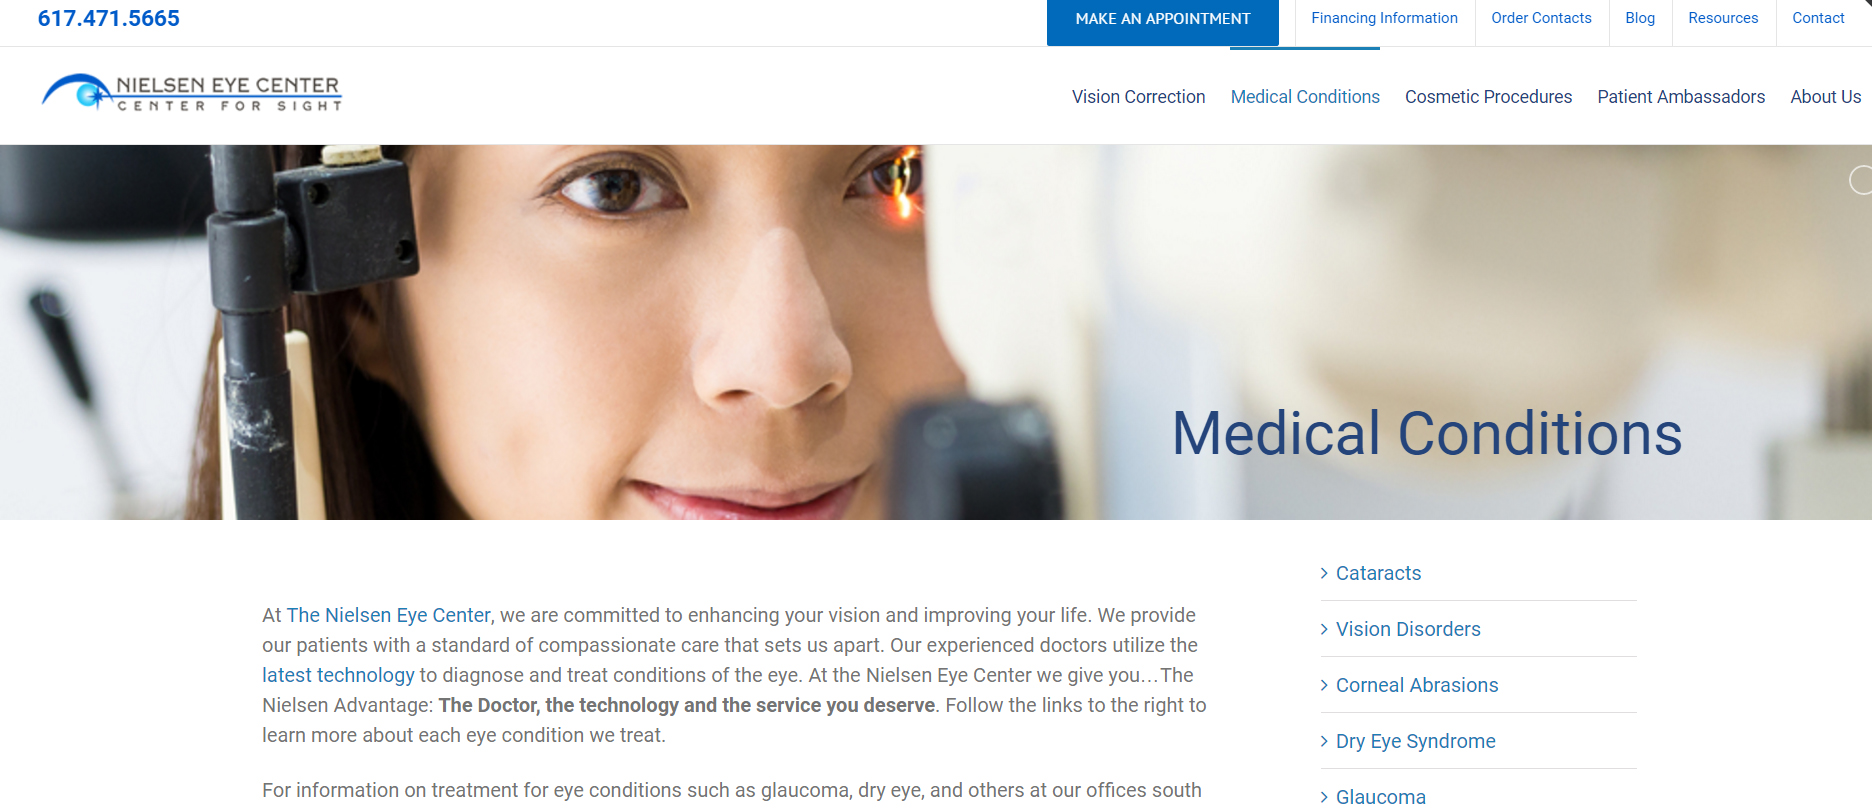 Nielsen Eye Center Responsive Web Design